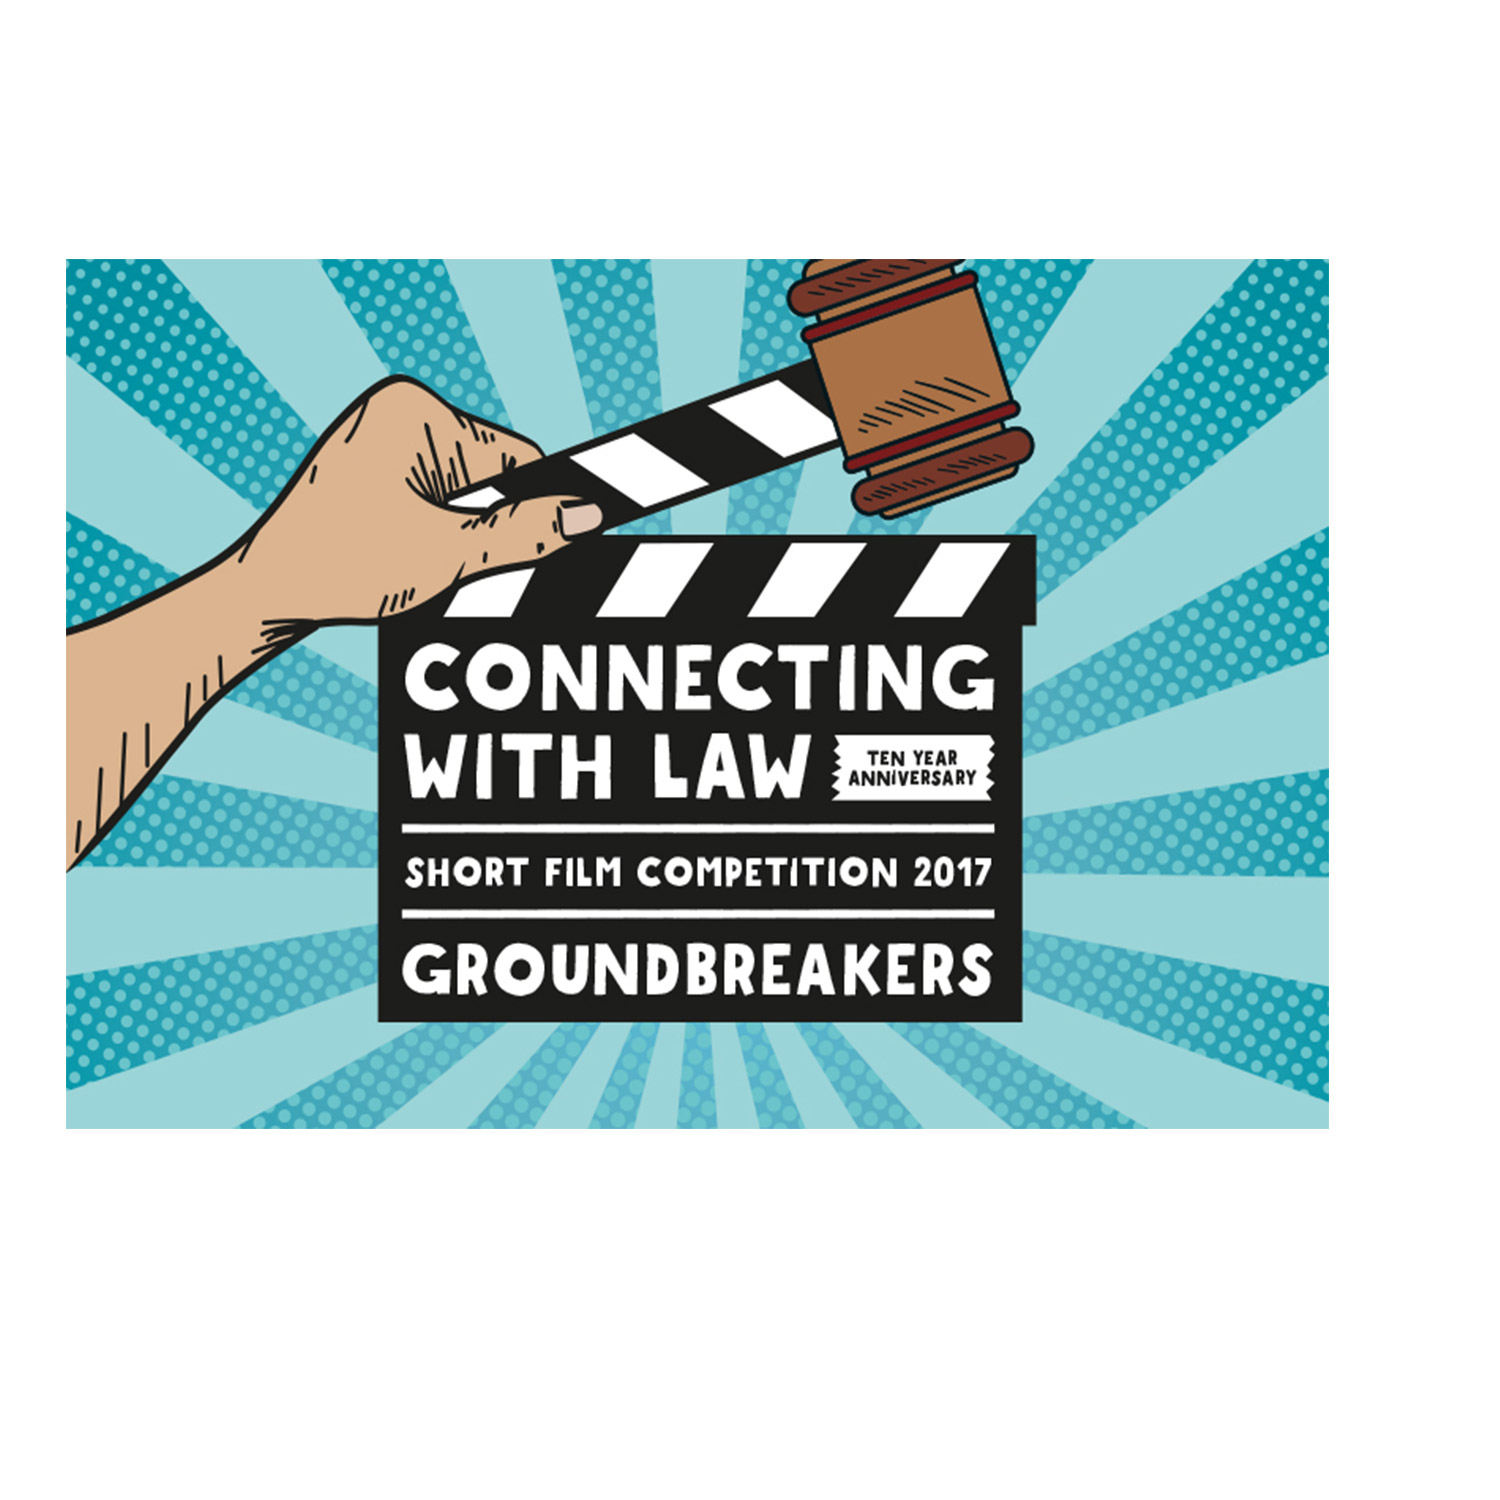 Connecting with Law Short Film Competition